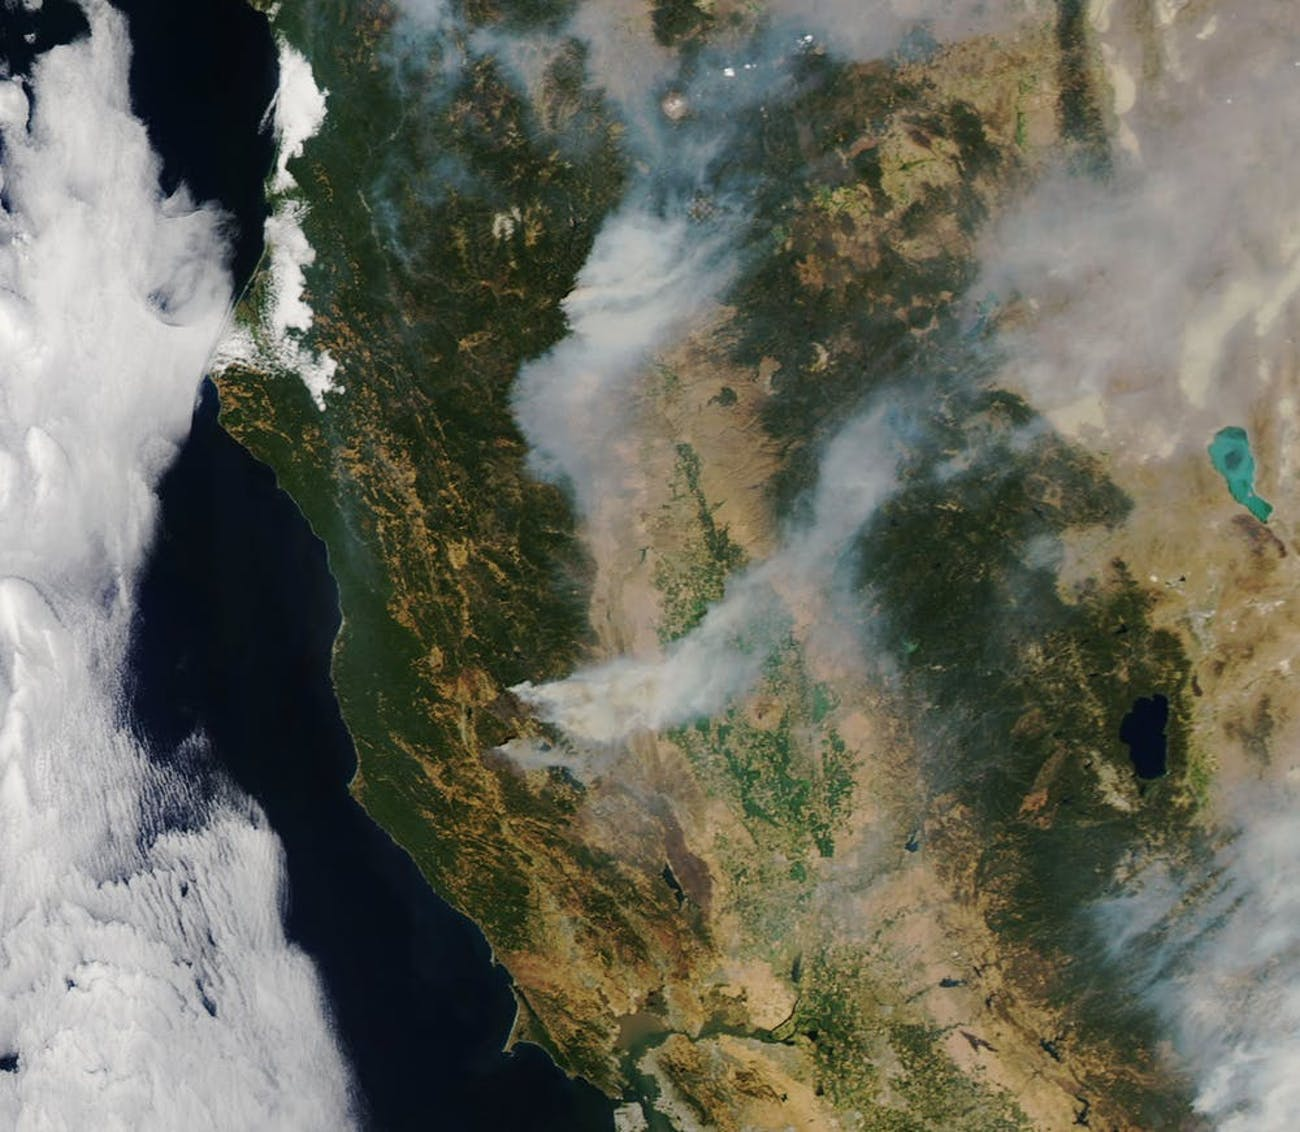 A satellite image of the Carr Fire in California. Drought conditions, in addition to a lot of dead trees and vegetation, are contributing to another year of severe wildfires.